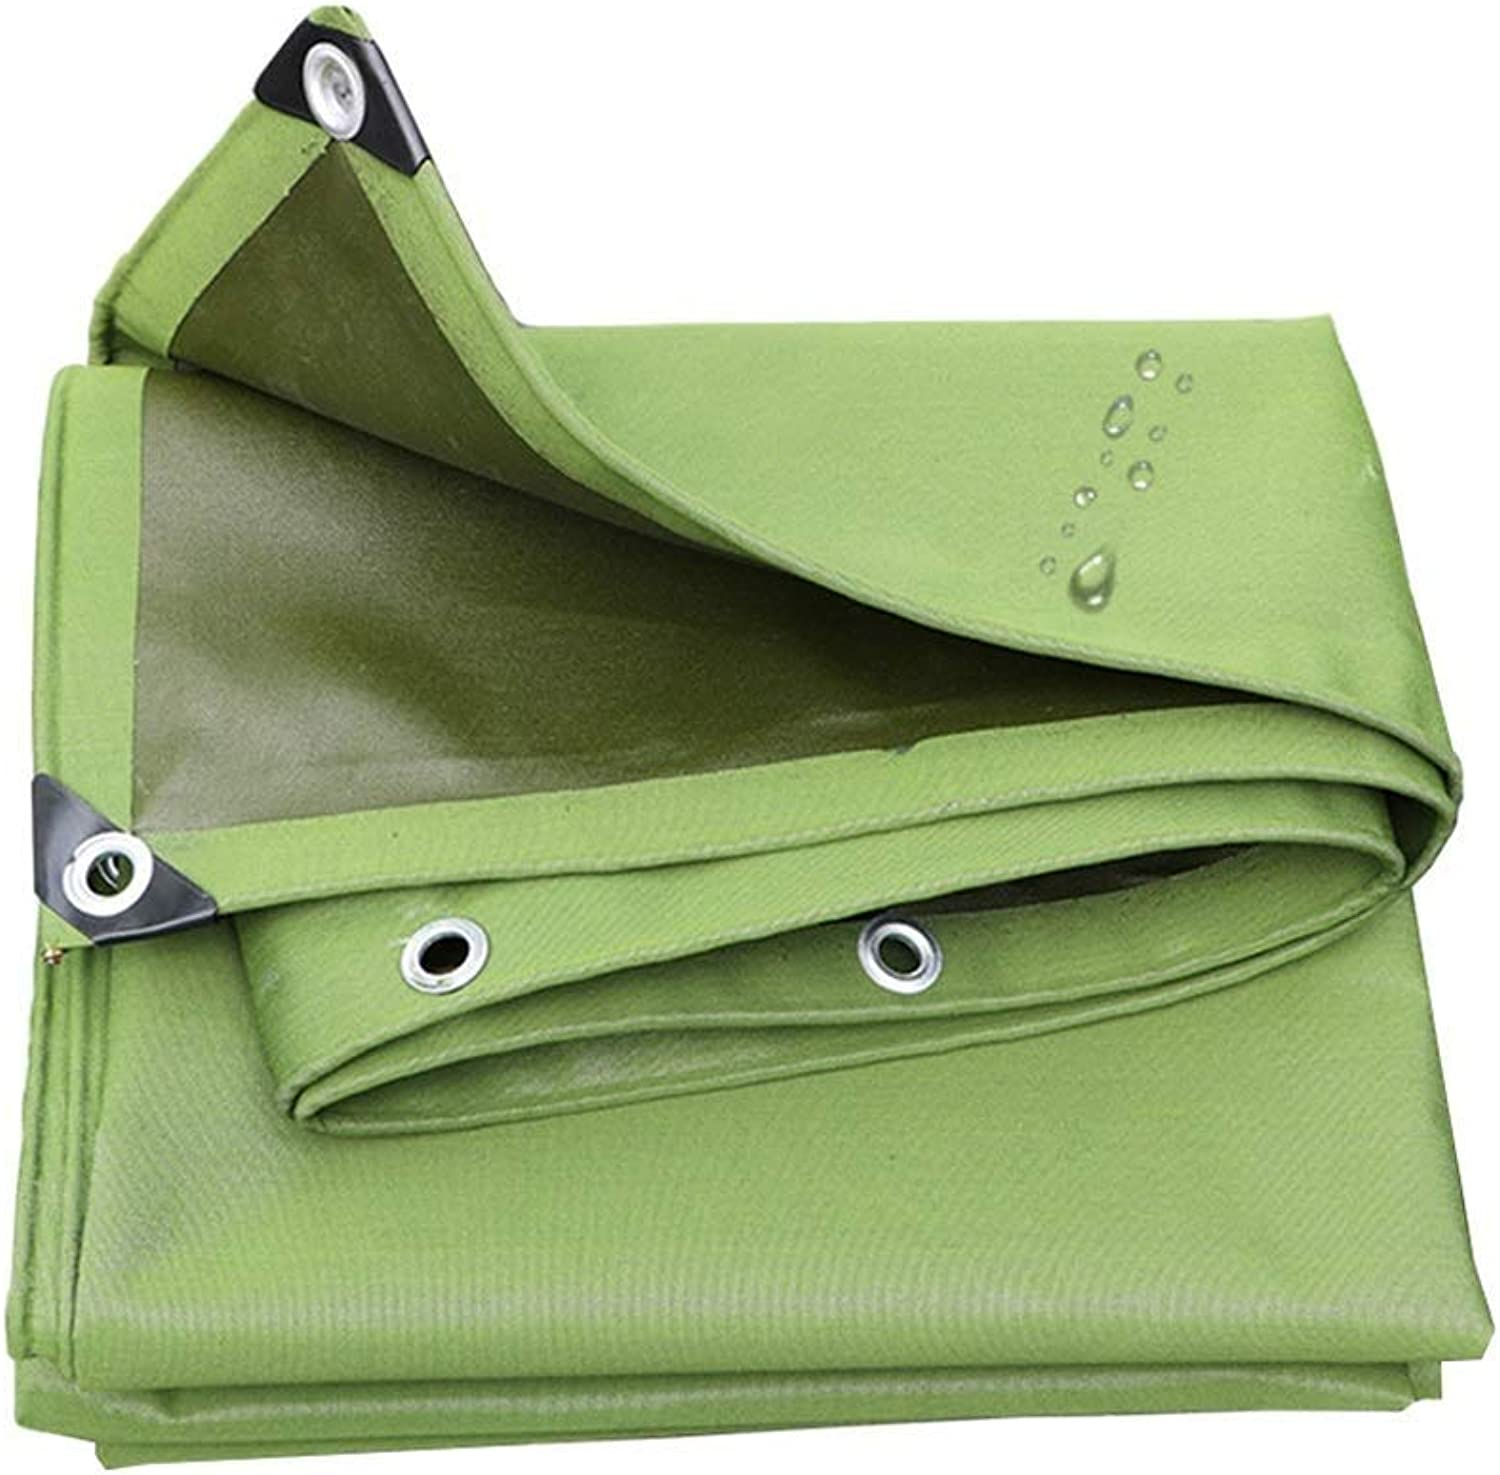 Waterproof tarp Thick Canvas Canvas Cloth Tarpaulin Waterproof Cloth Sunscreen Tarpaulin Large Truck Car Sunshade Rain Oxford Tarpaulin ZHAOFENGE (color   Green, Size   4x5m)